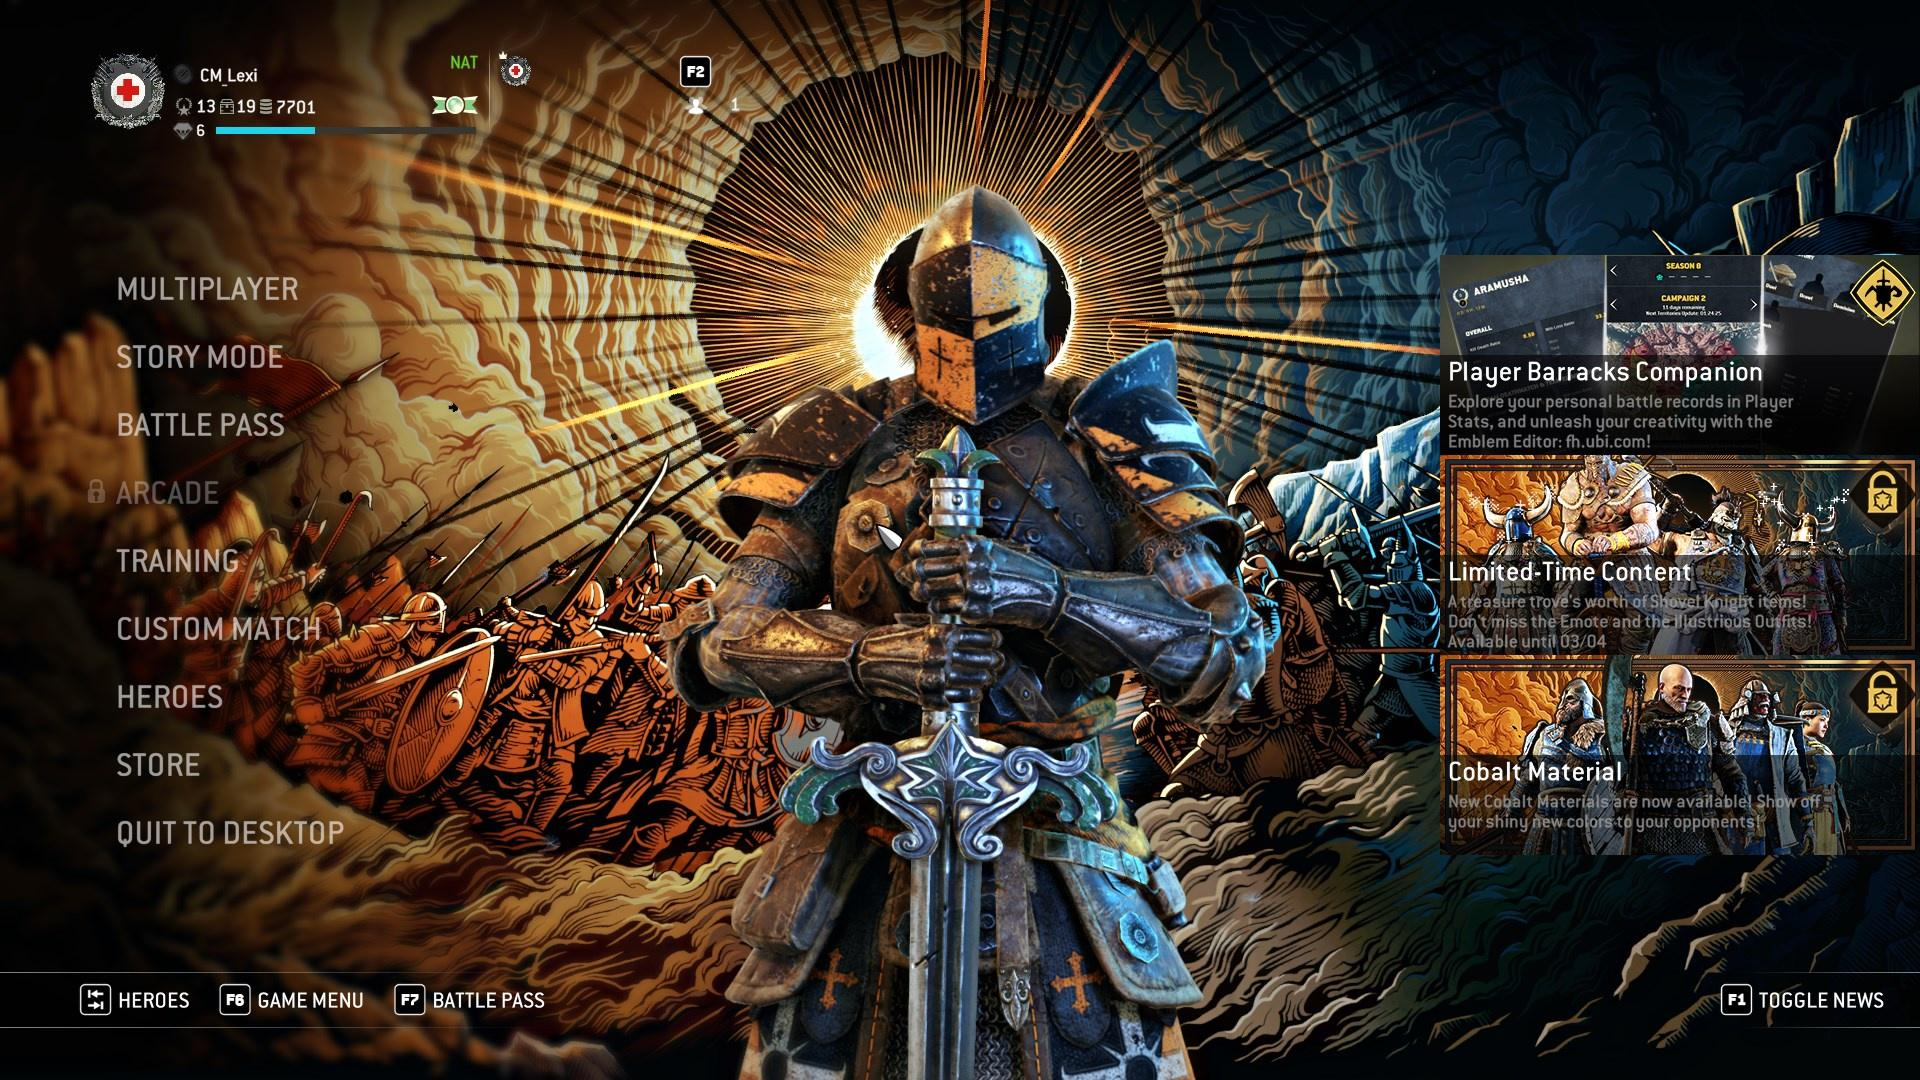 Main menu of For Honor, showing the different options, with the character Warden in the center posing